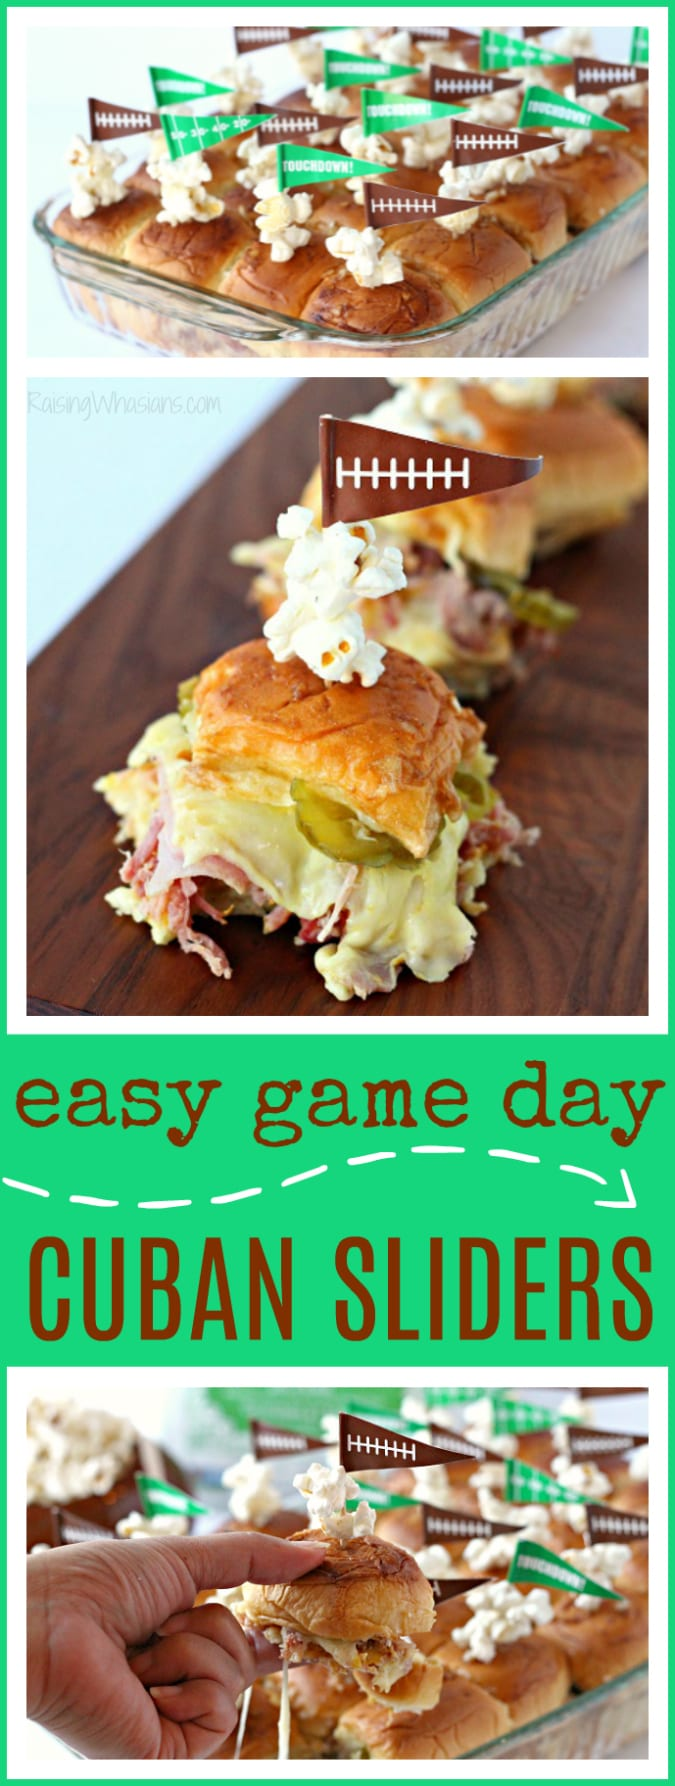 Wow your football party with these Easy Cuban Sliders for Game Day | easy sheet pan sandwiches for a delicious appetizer idea - This appetizer recipe would be perfect for a game day meal plan or for a superbowl party. Don't miss this easy sandwich recipe. #Recipe #SuperBowlRecipe #GameDayFood #EasyRecipe #Appetizer